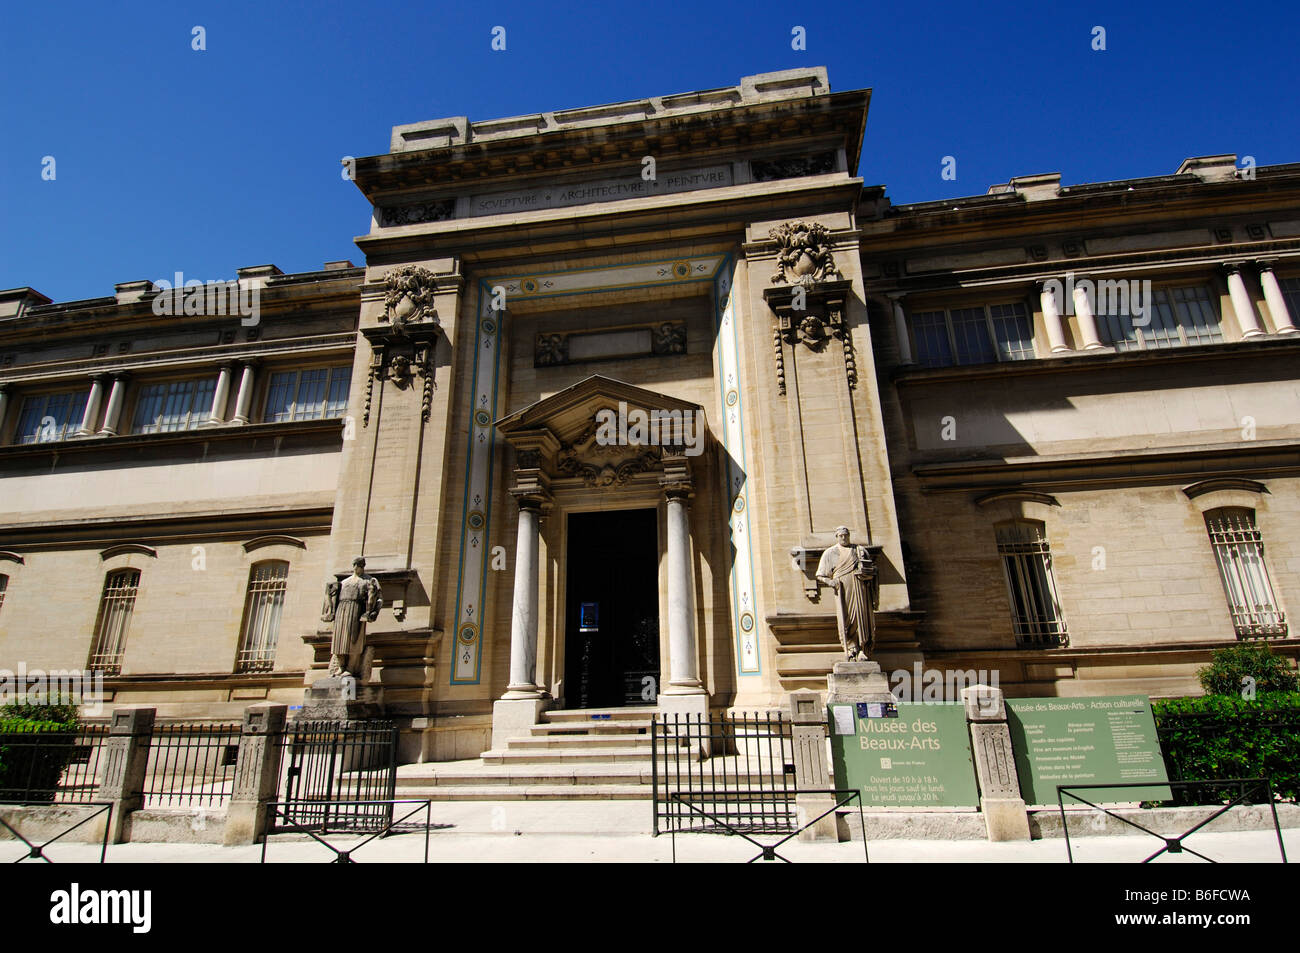 Museum of Fine Arts, Nîmes, Provence, France, Europe - Stock Image